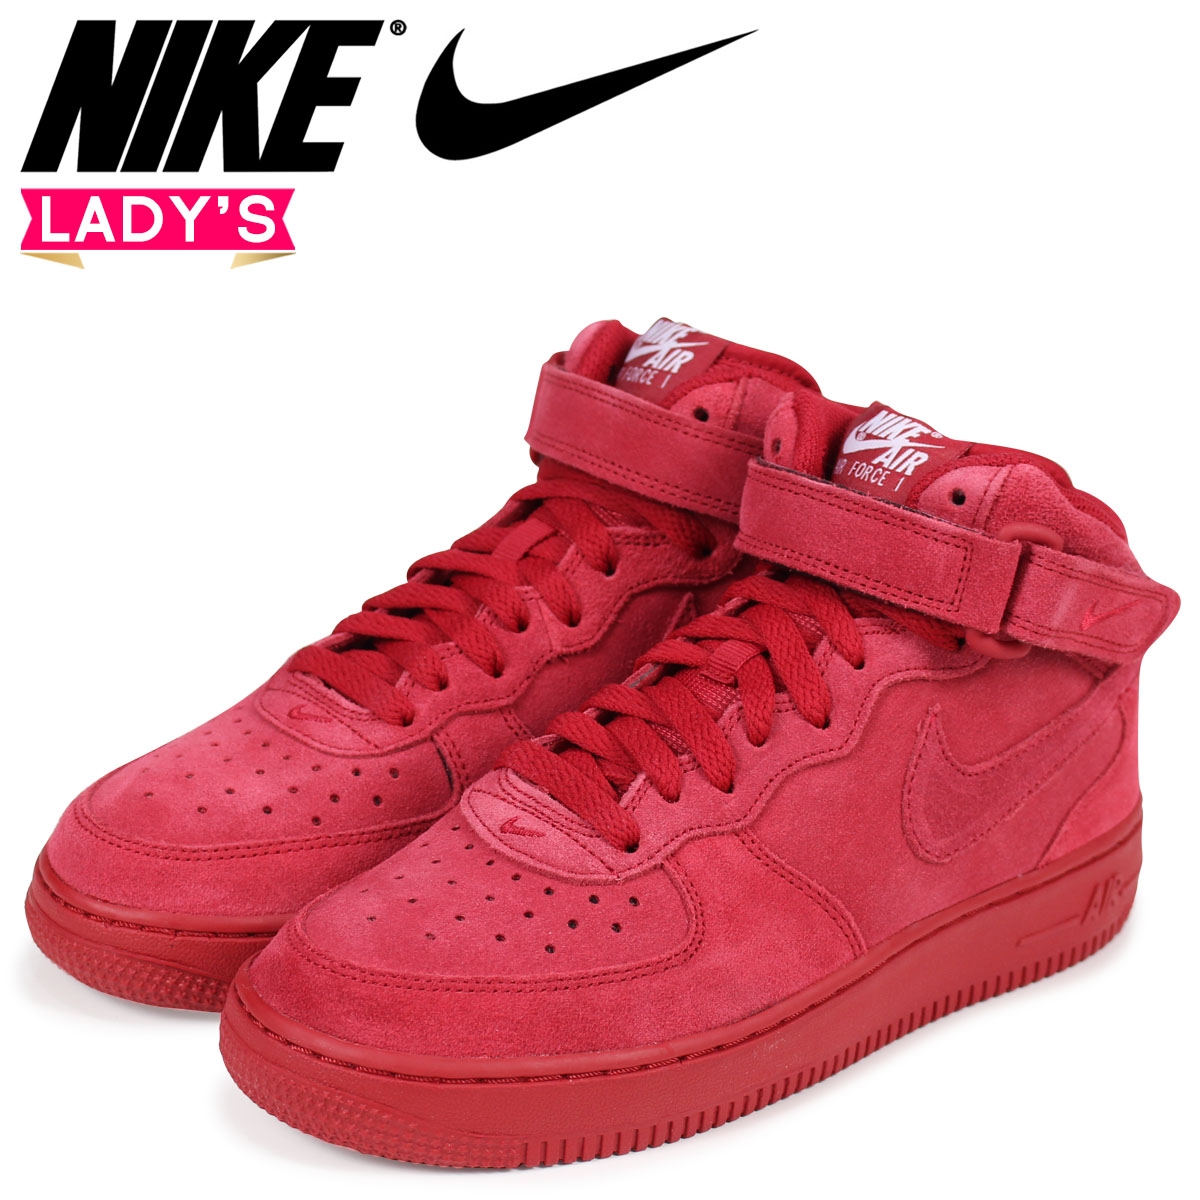 NIKE Nike air force 1 MID Lady's sneakers AIR FORCE 1 GS 314,195-603 red red